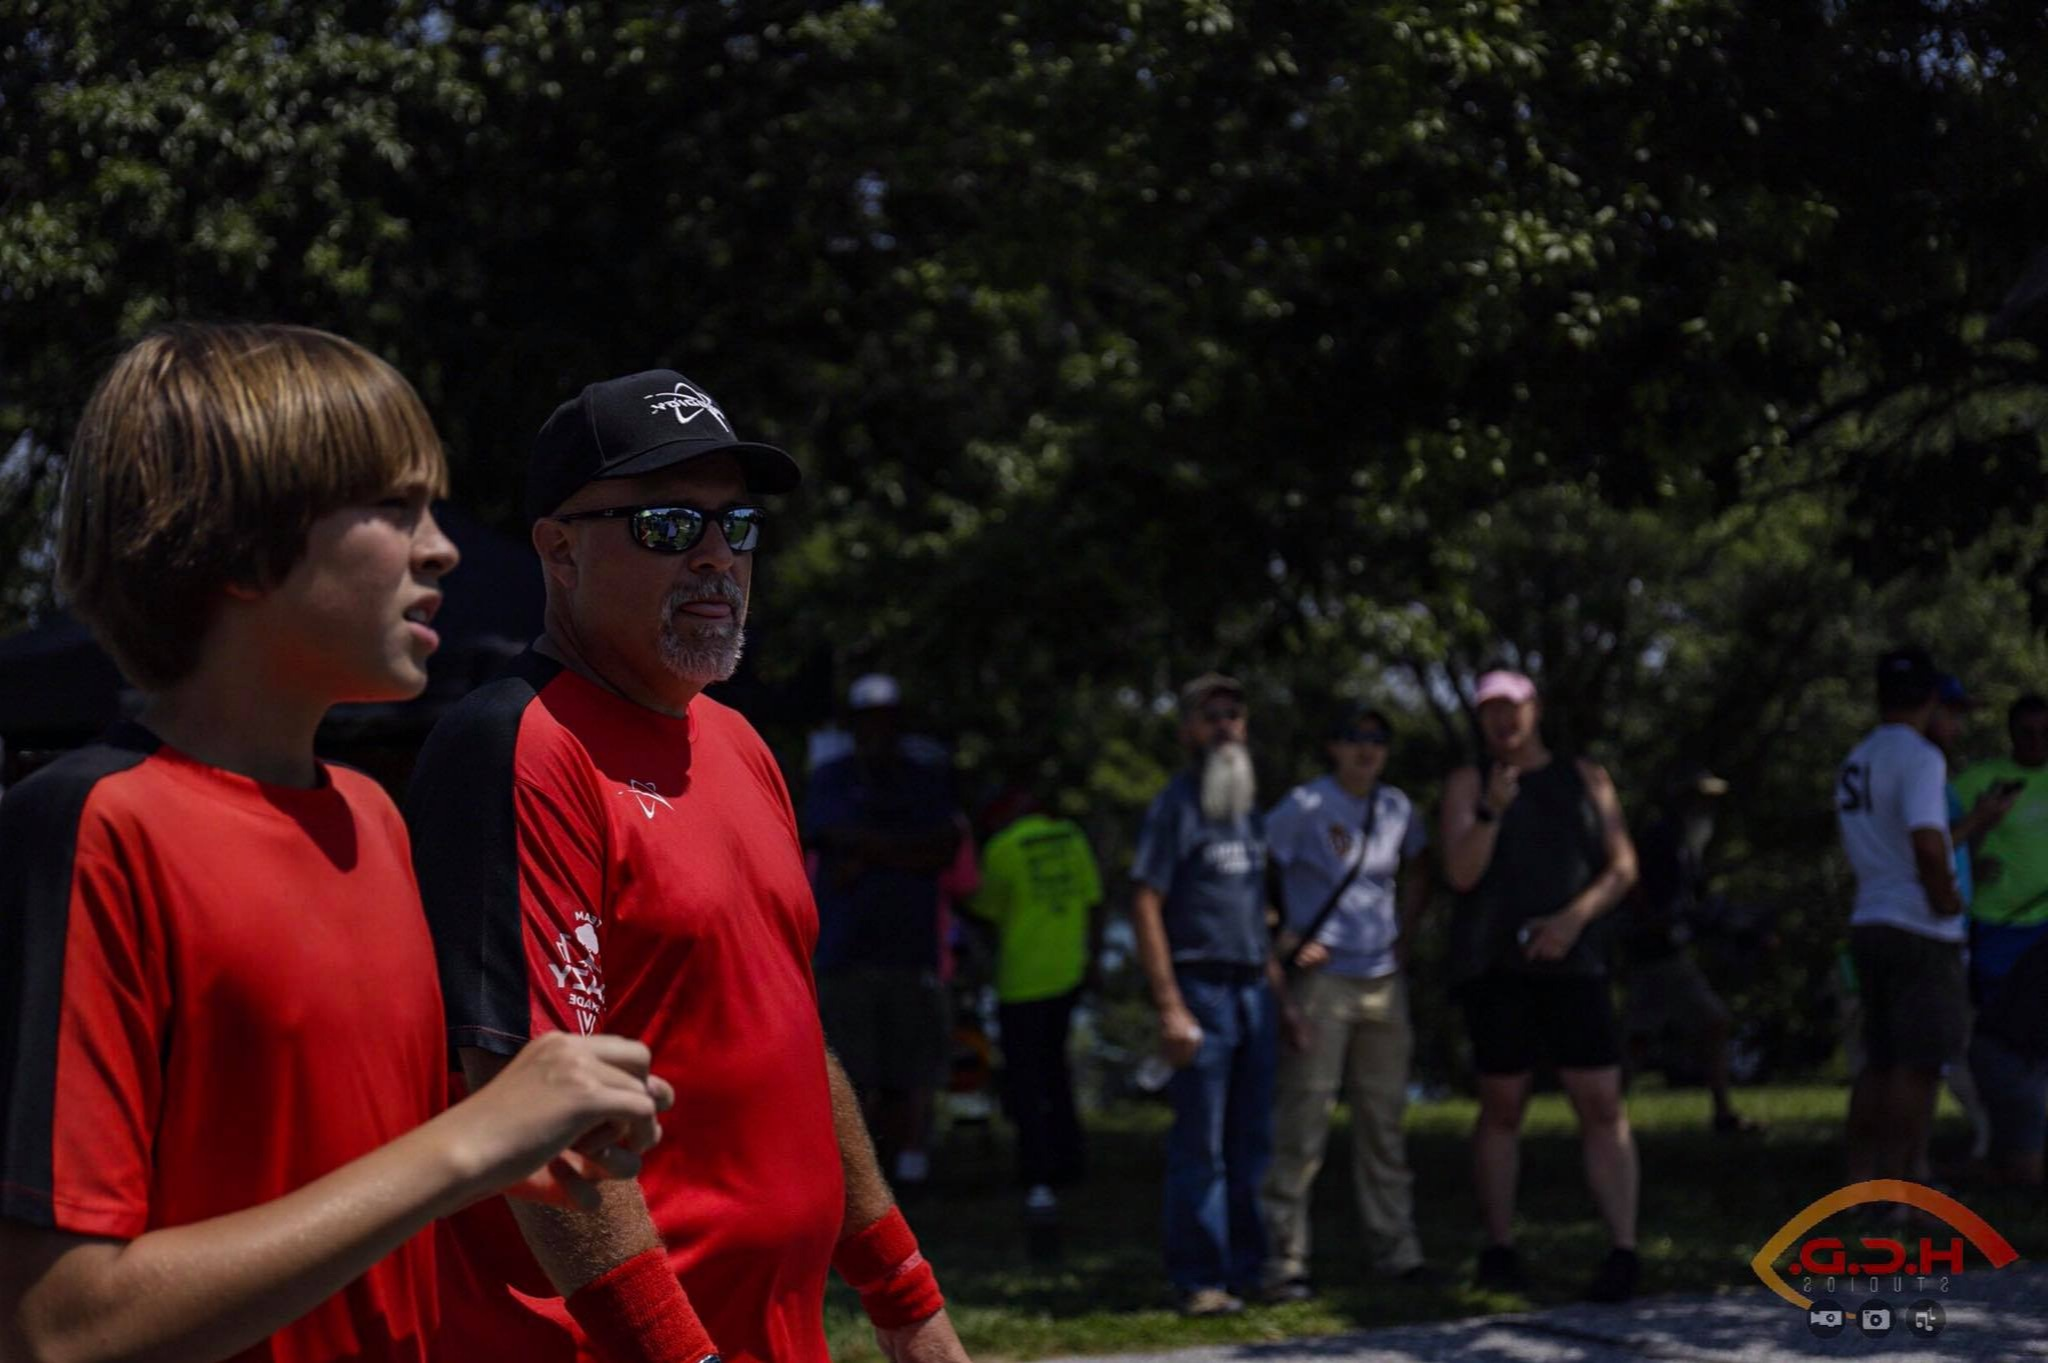 Billy Ray Osborn and his son, Adam, talk during the 2019 PDGA Amateur Disc Golf World Championships. Photo by Brian Potts.